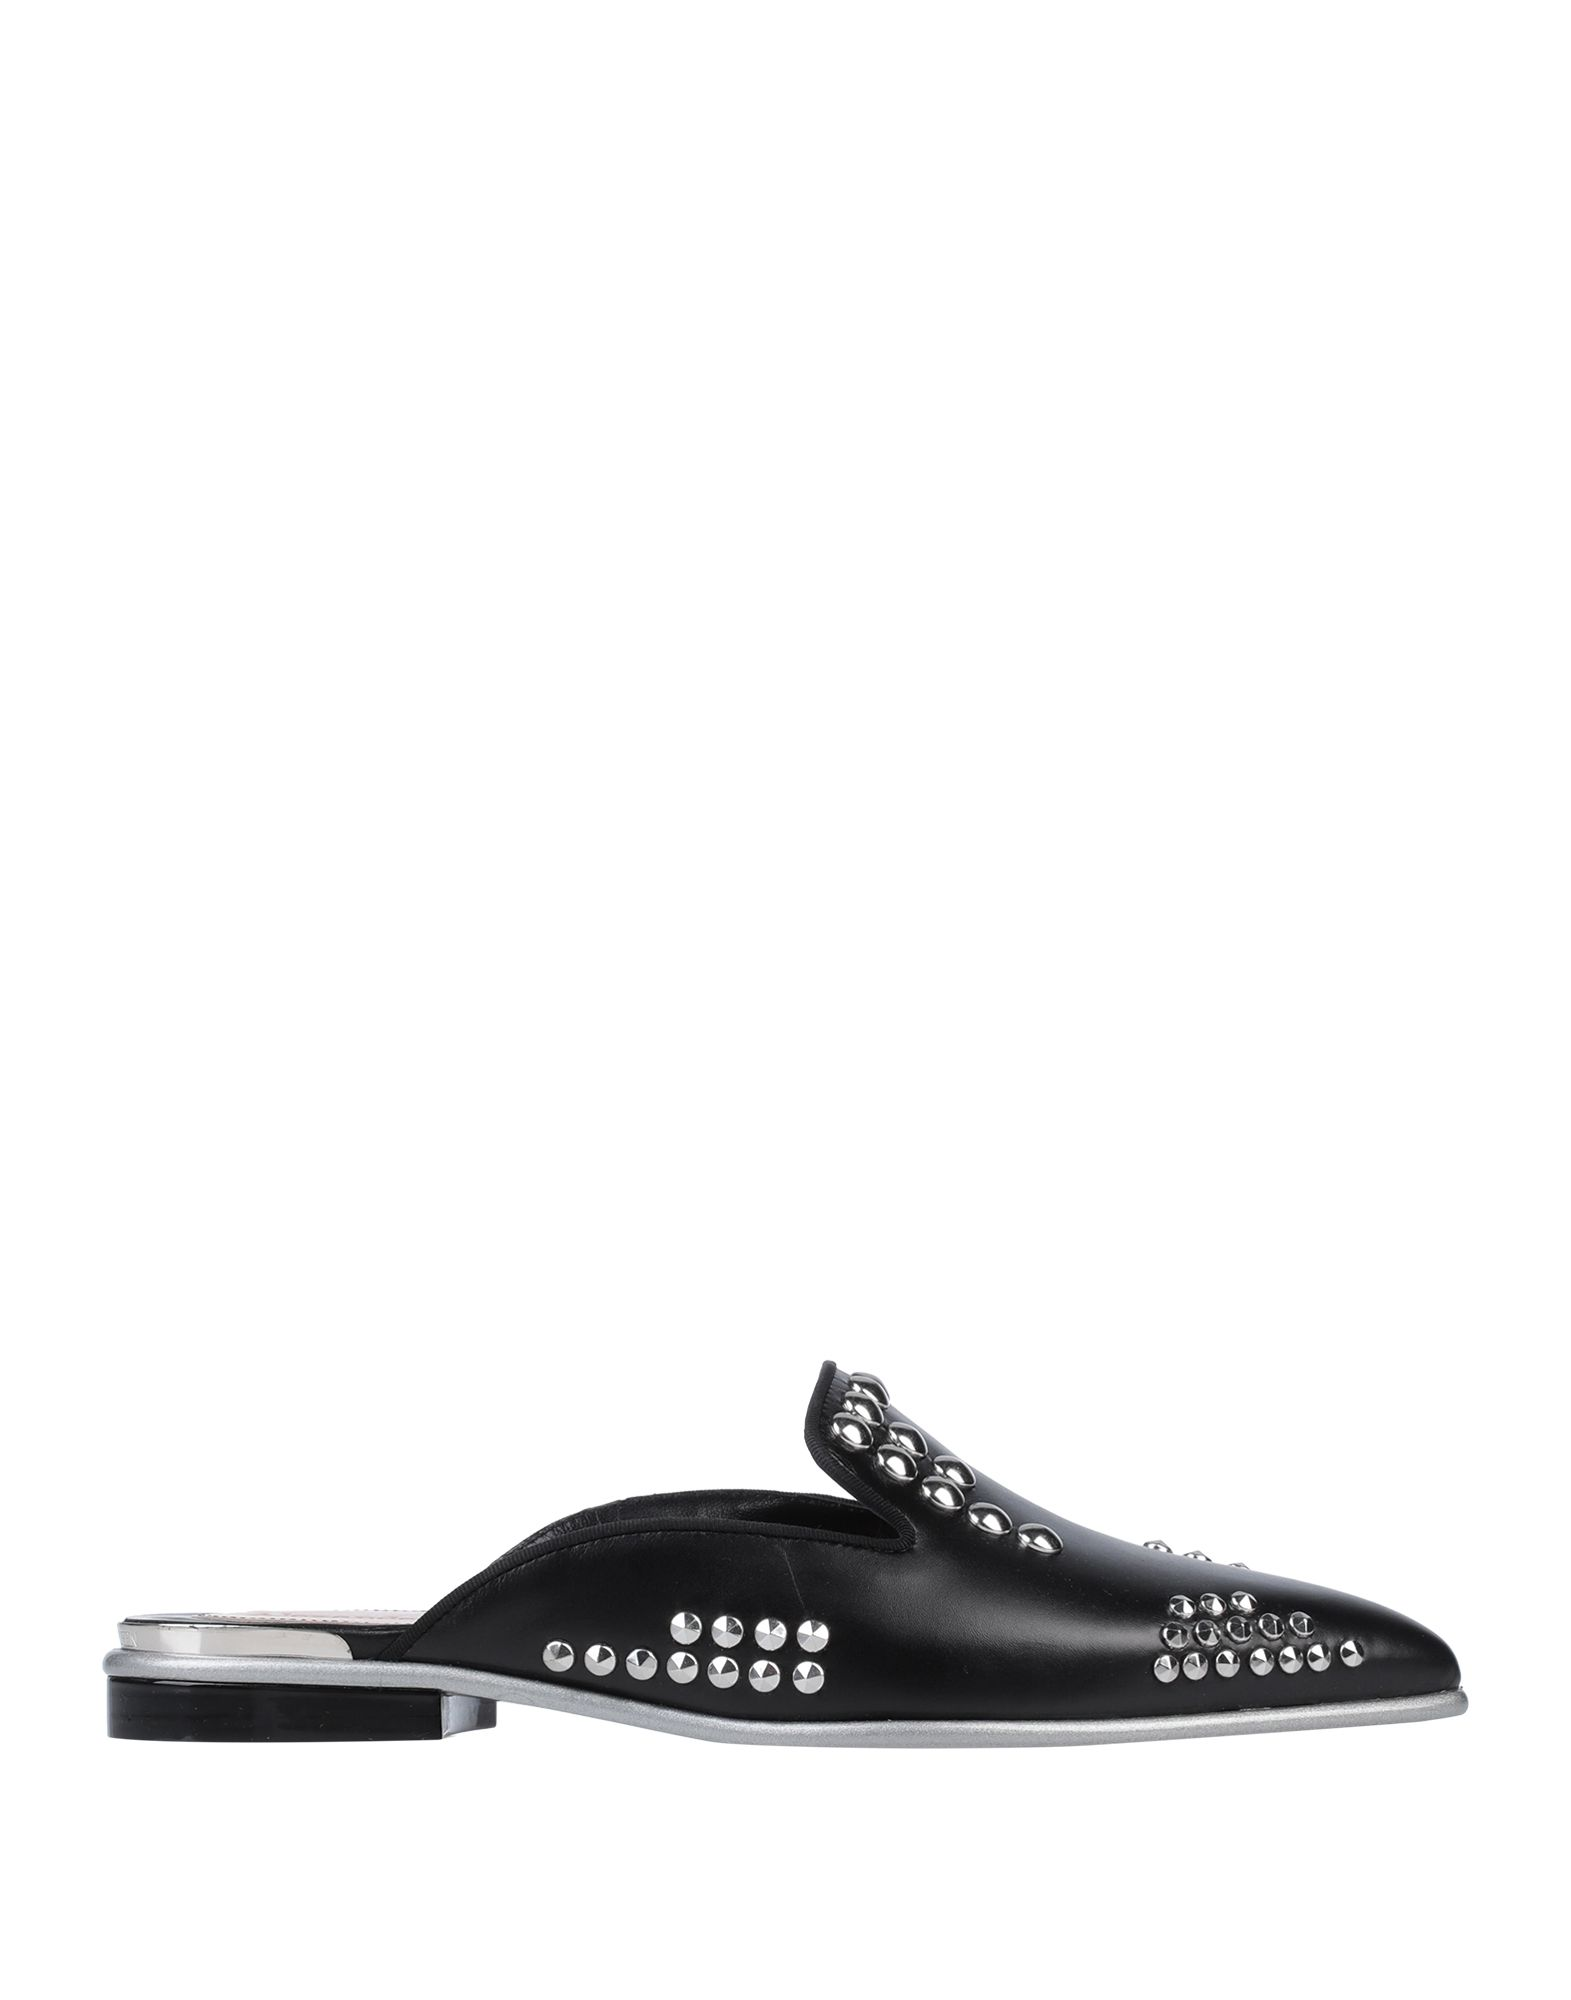 ALEXANDER MCQUEEN Mules. leather, metal applications, solid color, narrow toeline, flat, leather lining, leather/rubber sole, contains non-textile parts of animal origin. Soft Leather